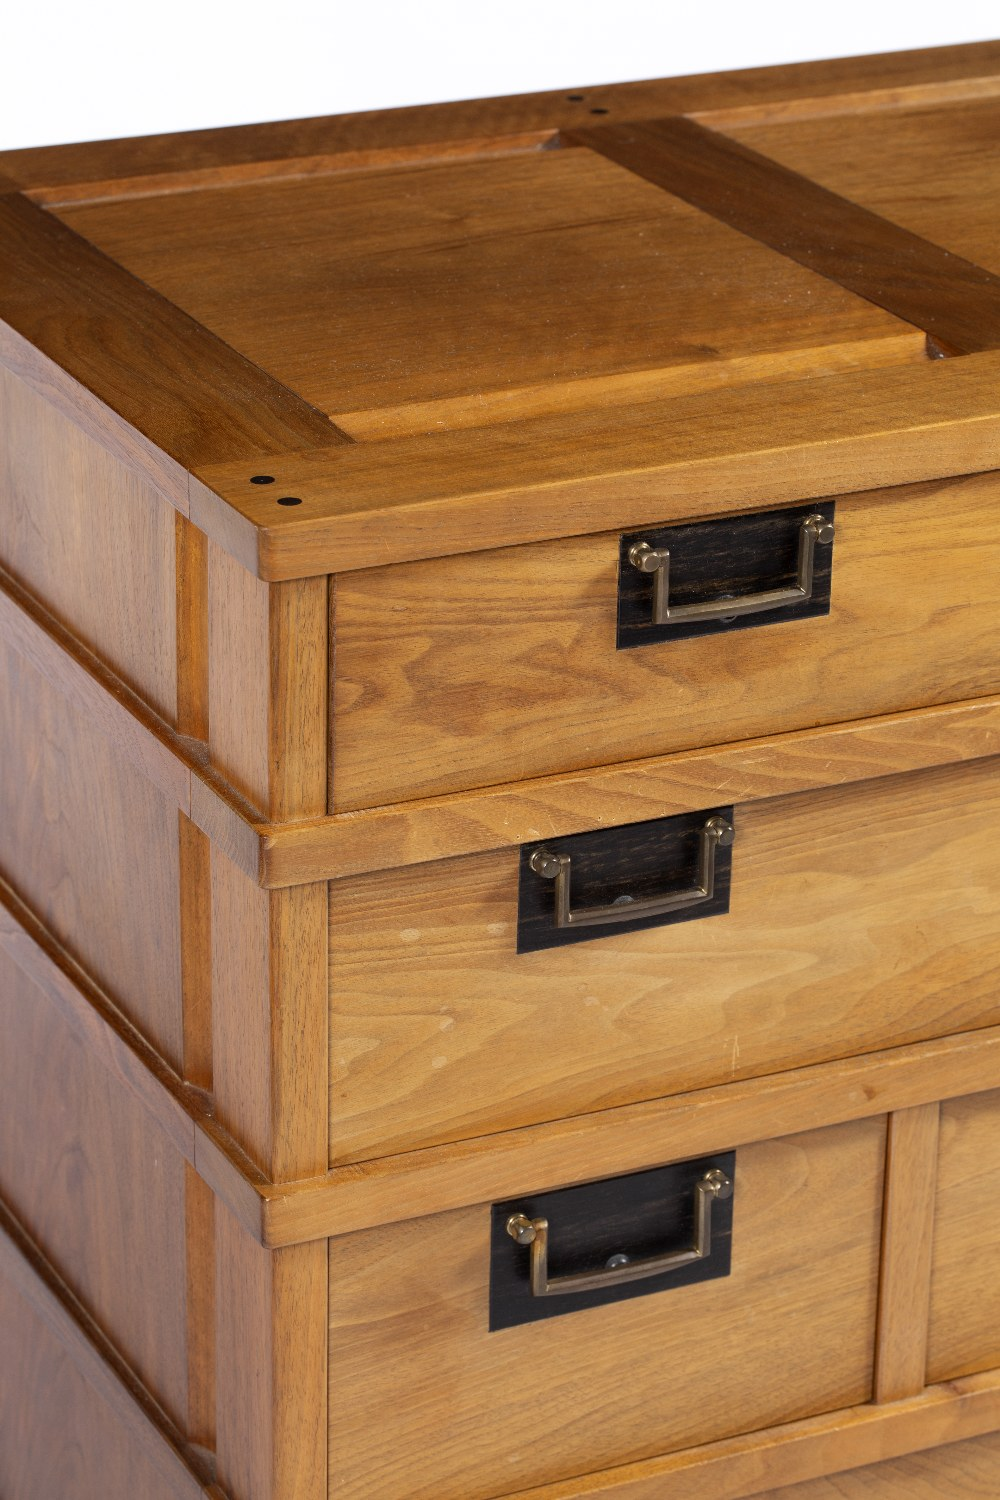 Lot 84 - Alan Peters OBE (1933 - 2009) Korean/Japanese style chest of drawers 1982/1983 thirteen drawers on